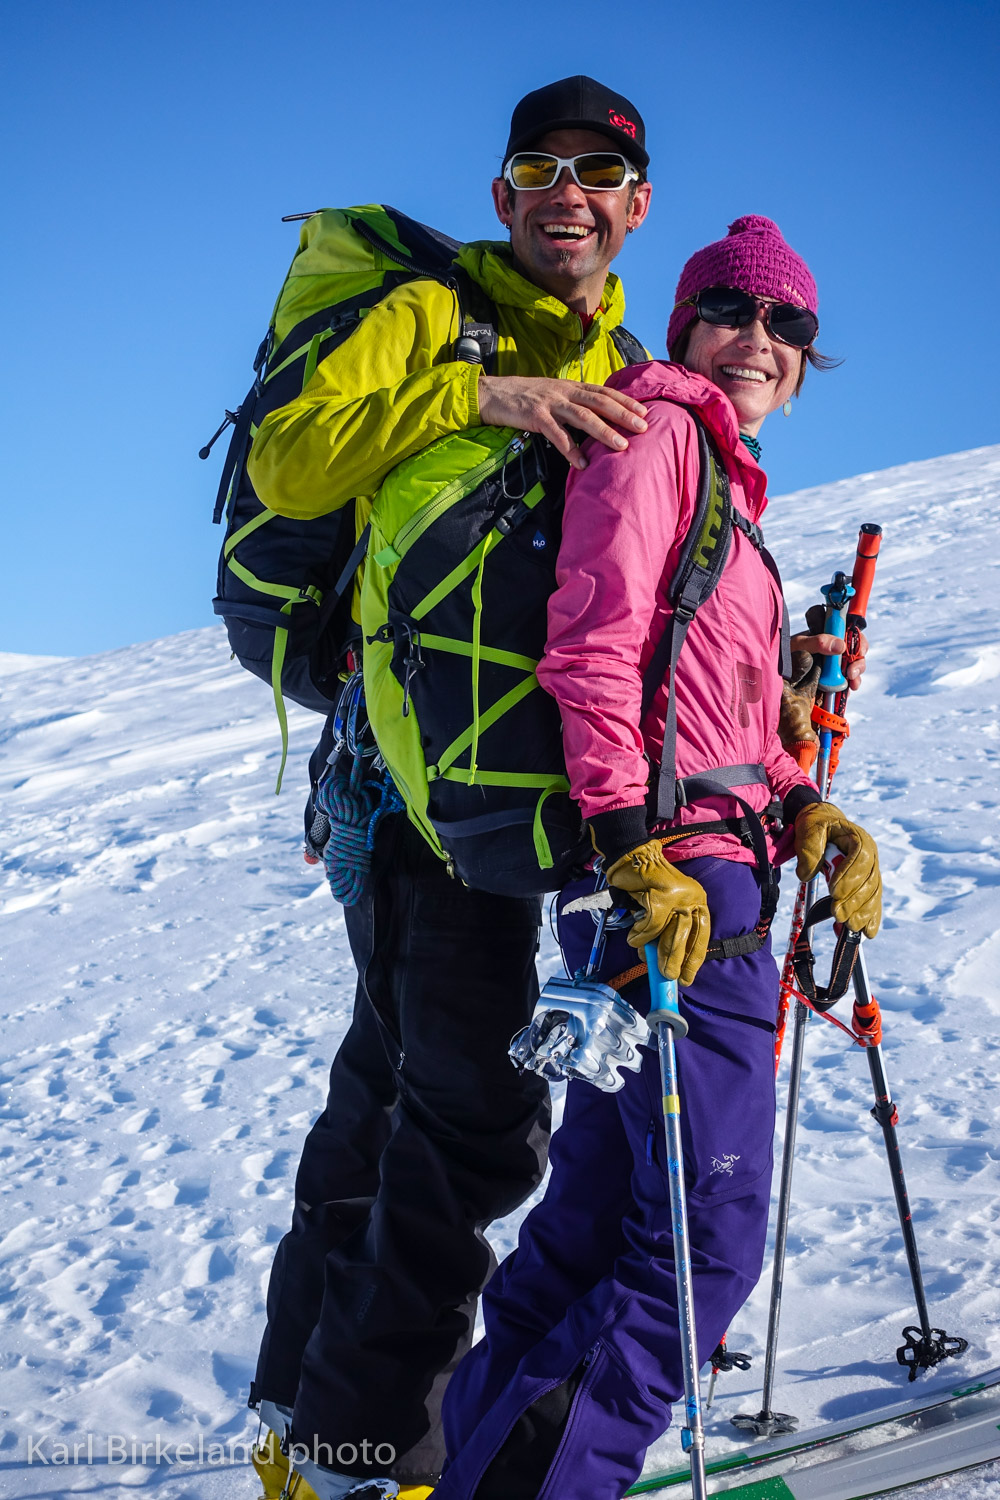 Joe and Cathy skiing in the Kenai Mountains near Anchorage.